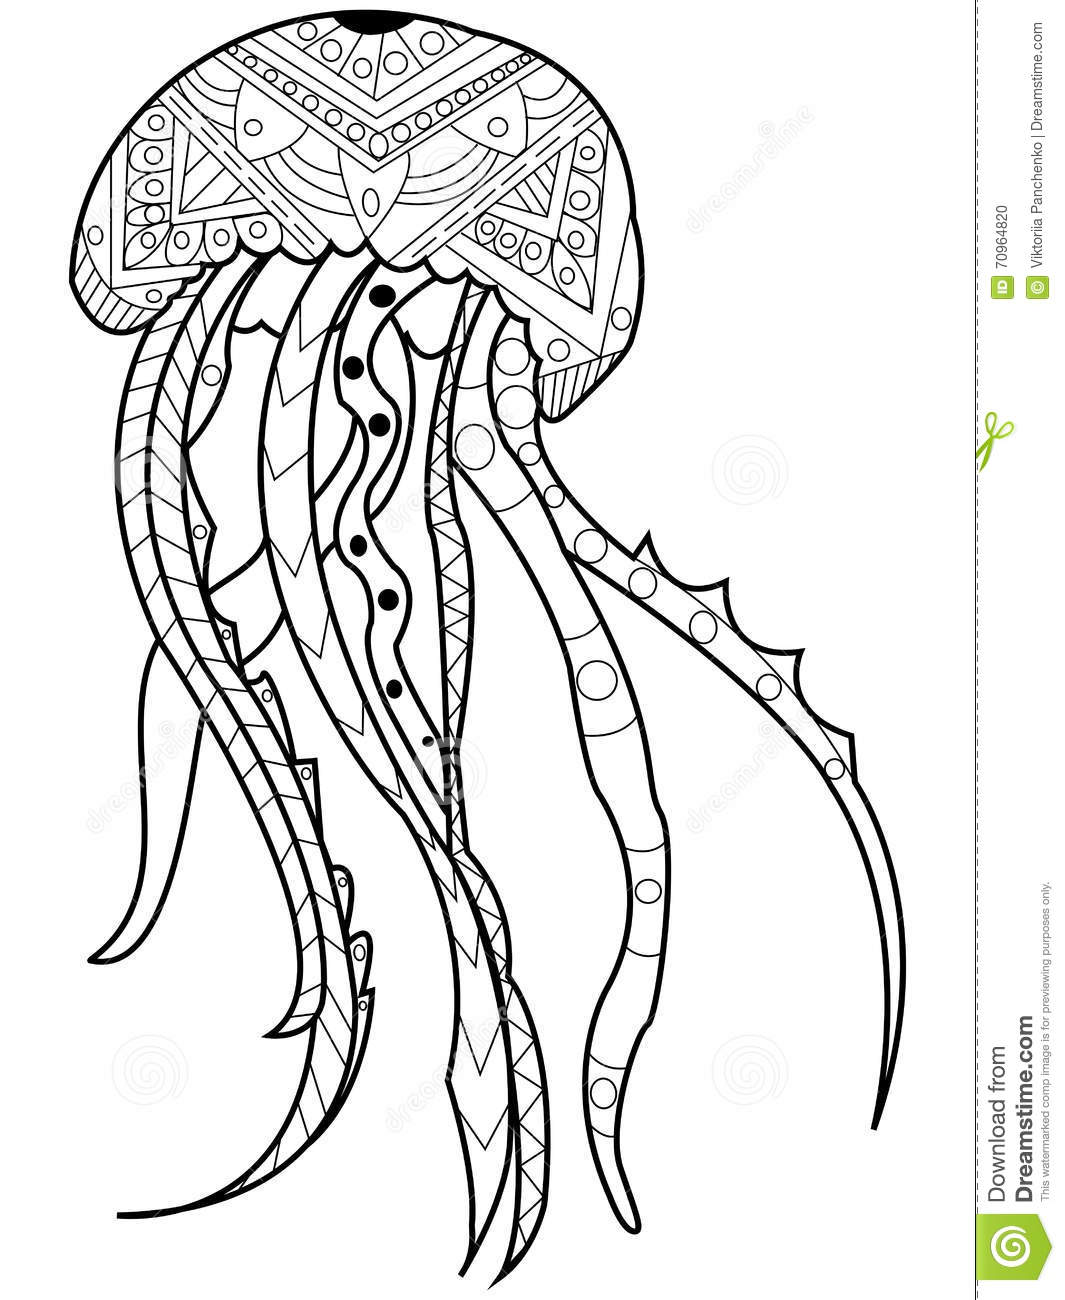 Zentangle Jellyfish Coloring Page Adult Sketch Coloring Page